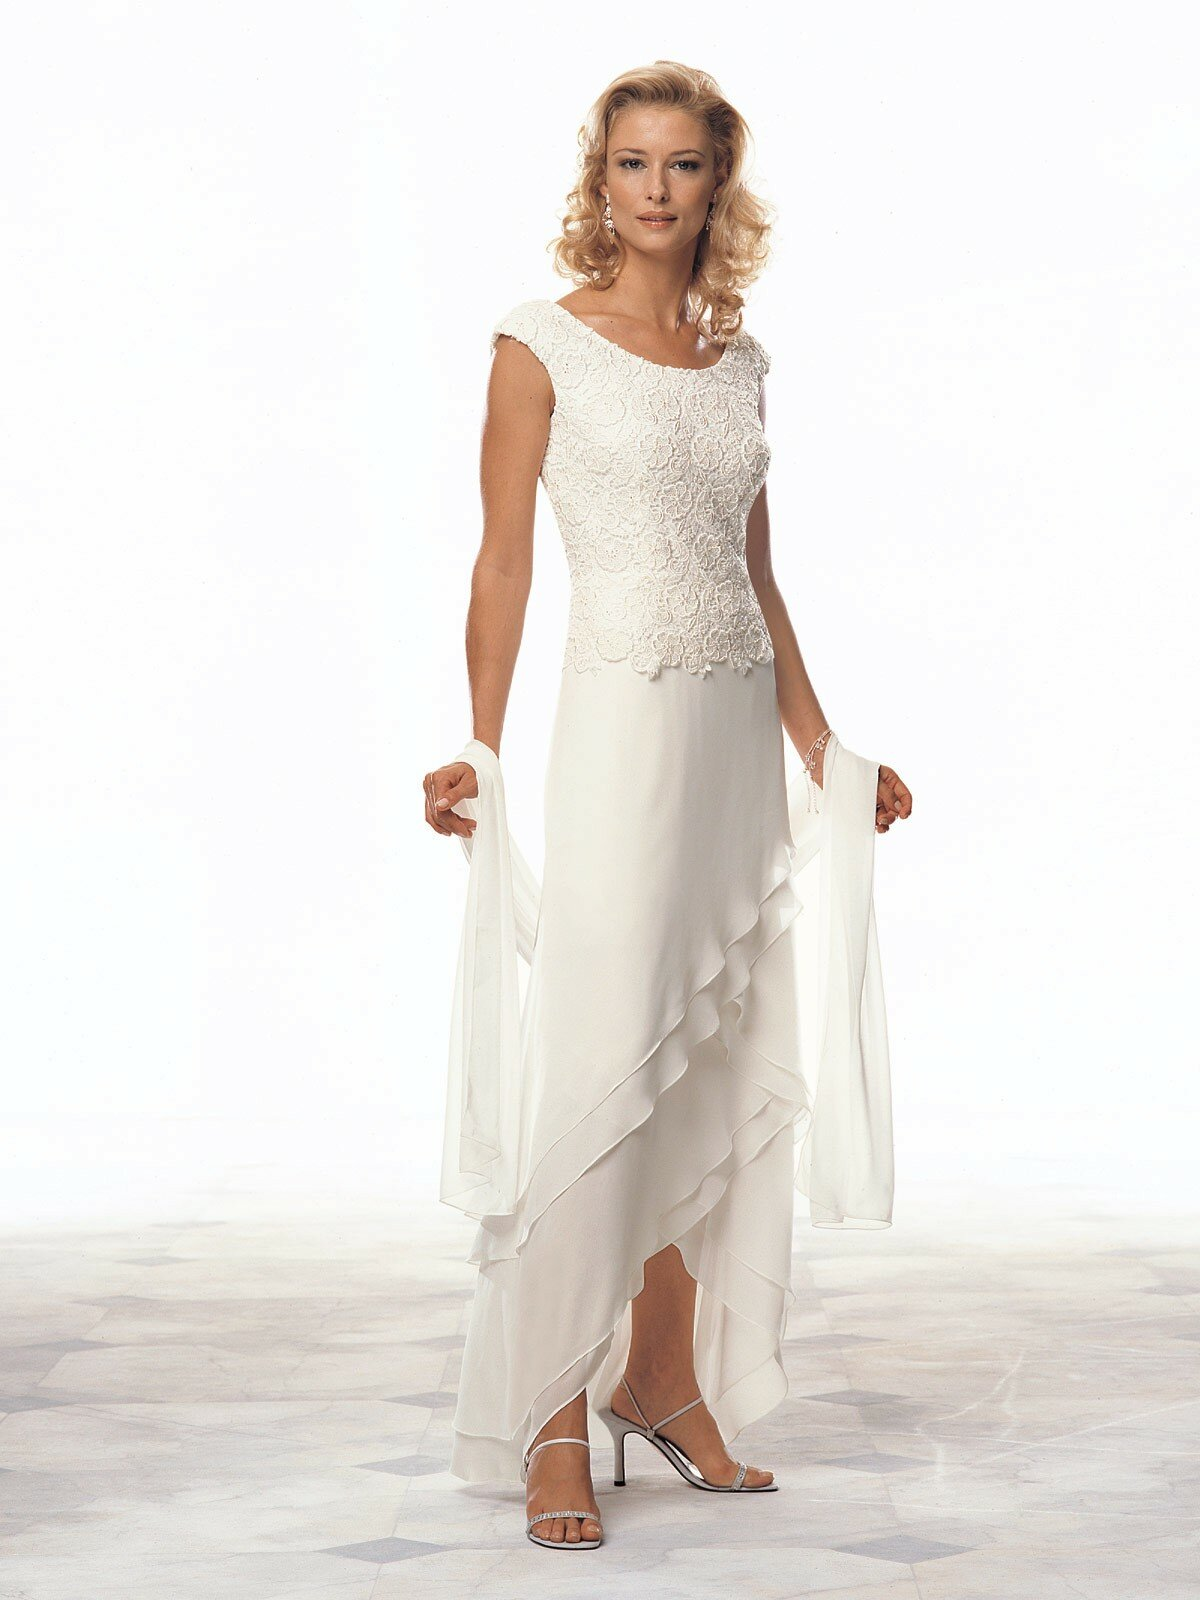 Dresses for wedding mother of the groom pictures ideas for Mothers dresses for wedding